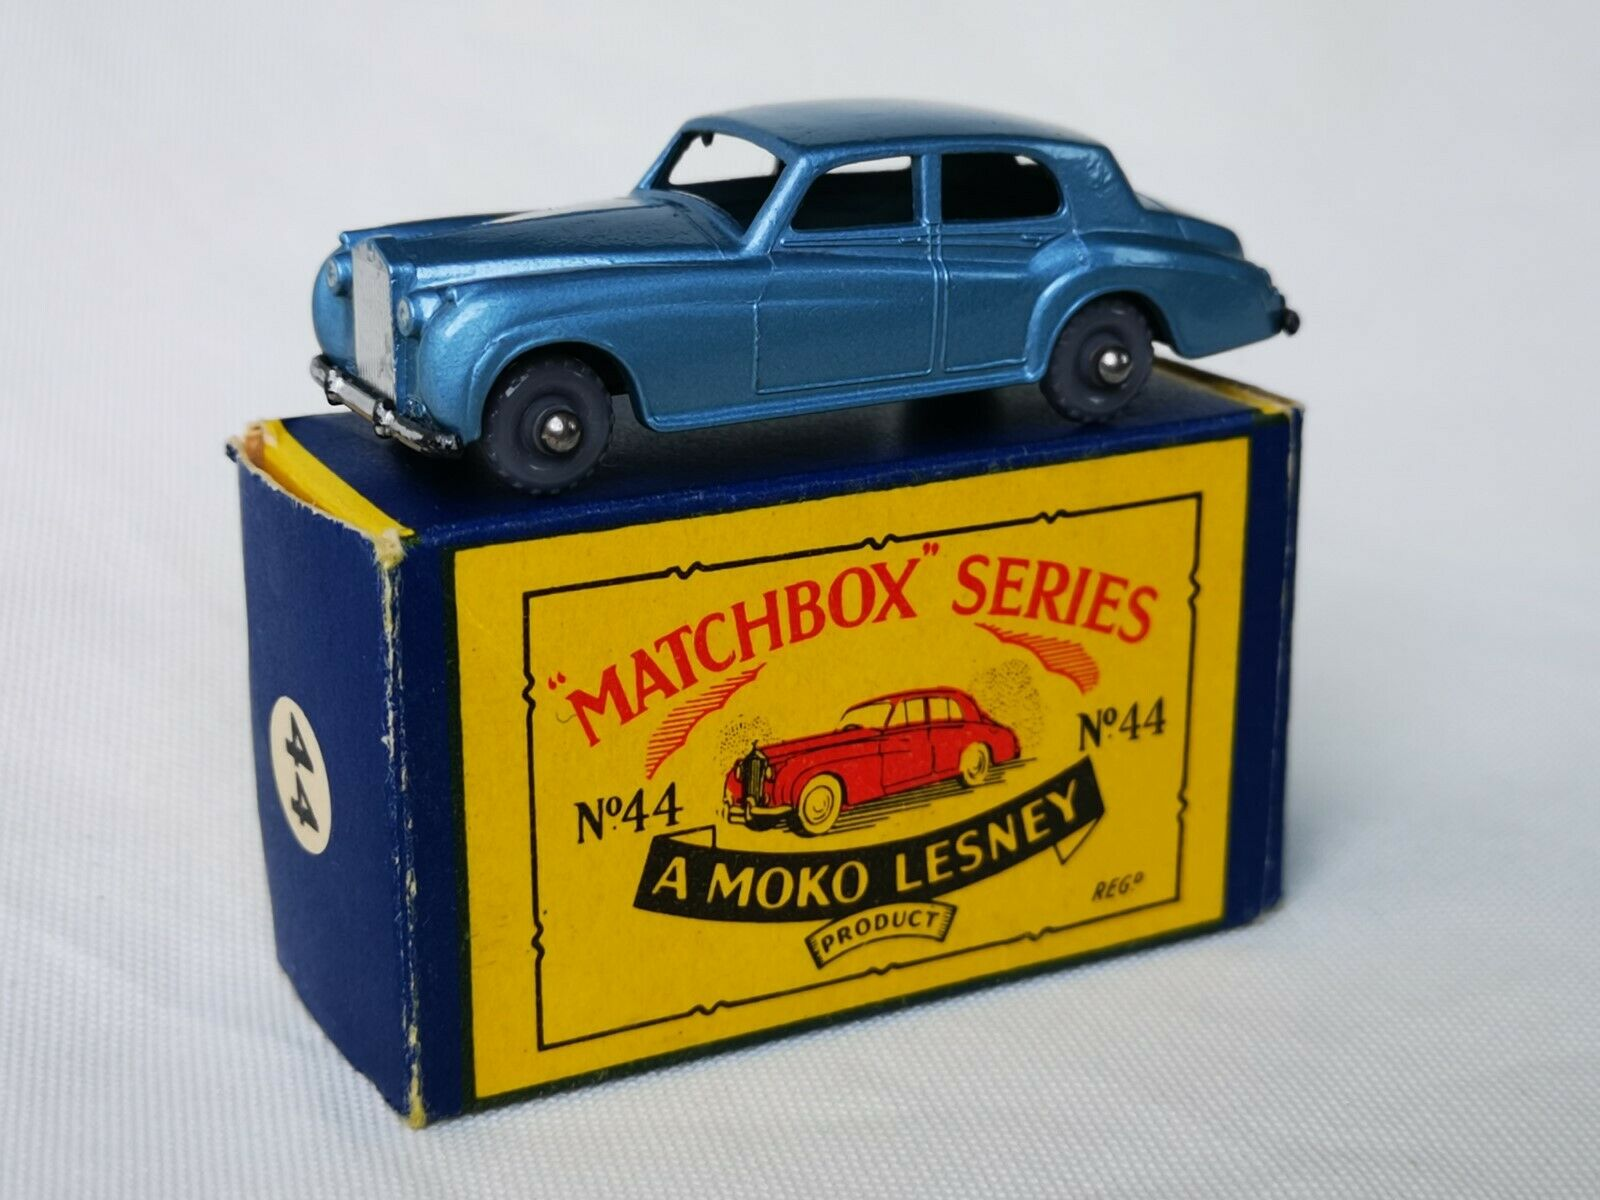 Matchbox Lesney Moko no. 44 Rolls Royce plata Cloud Boxed